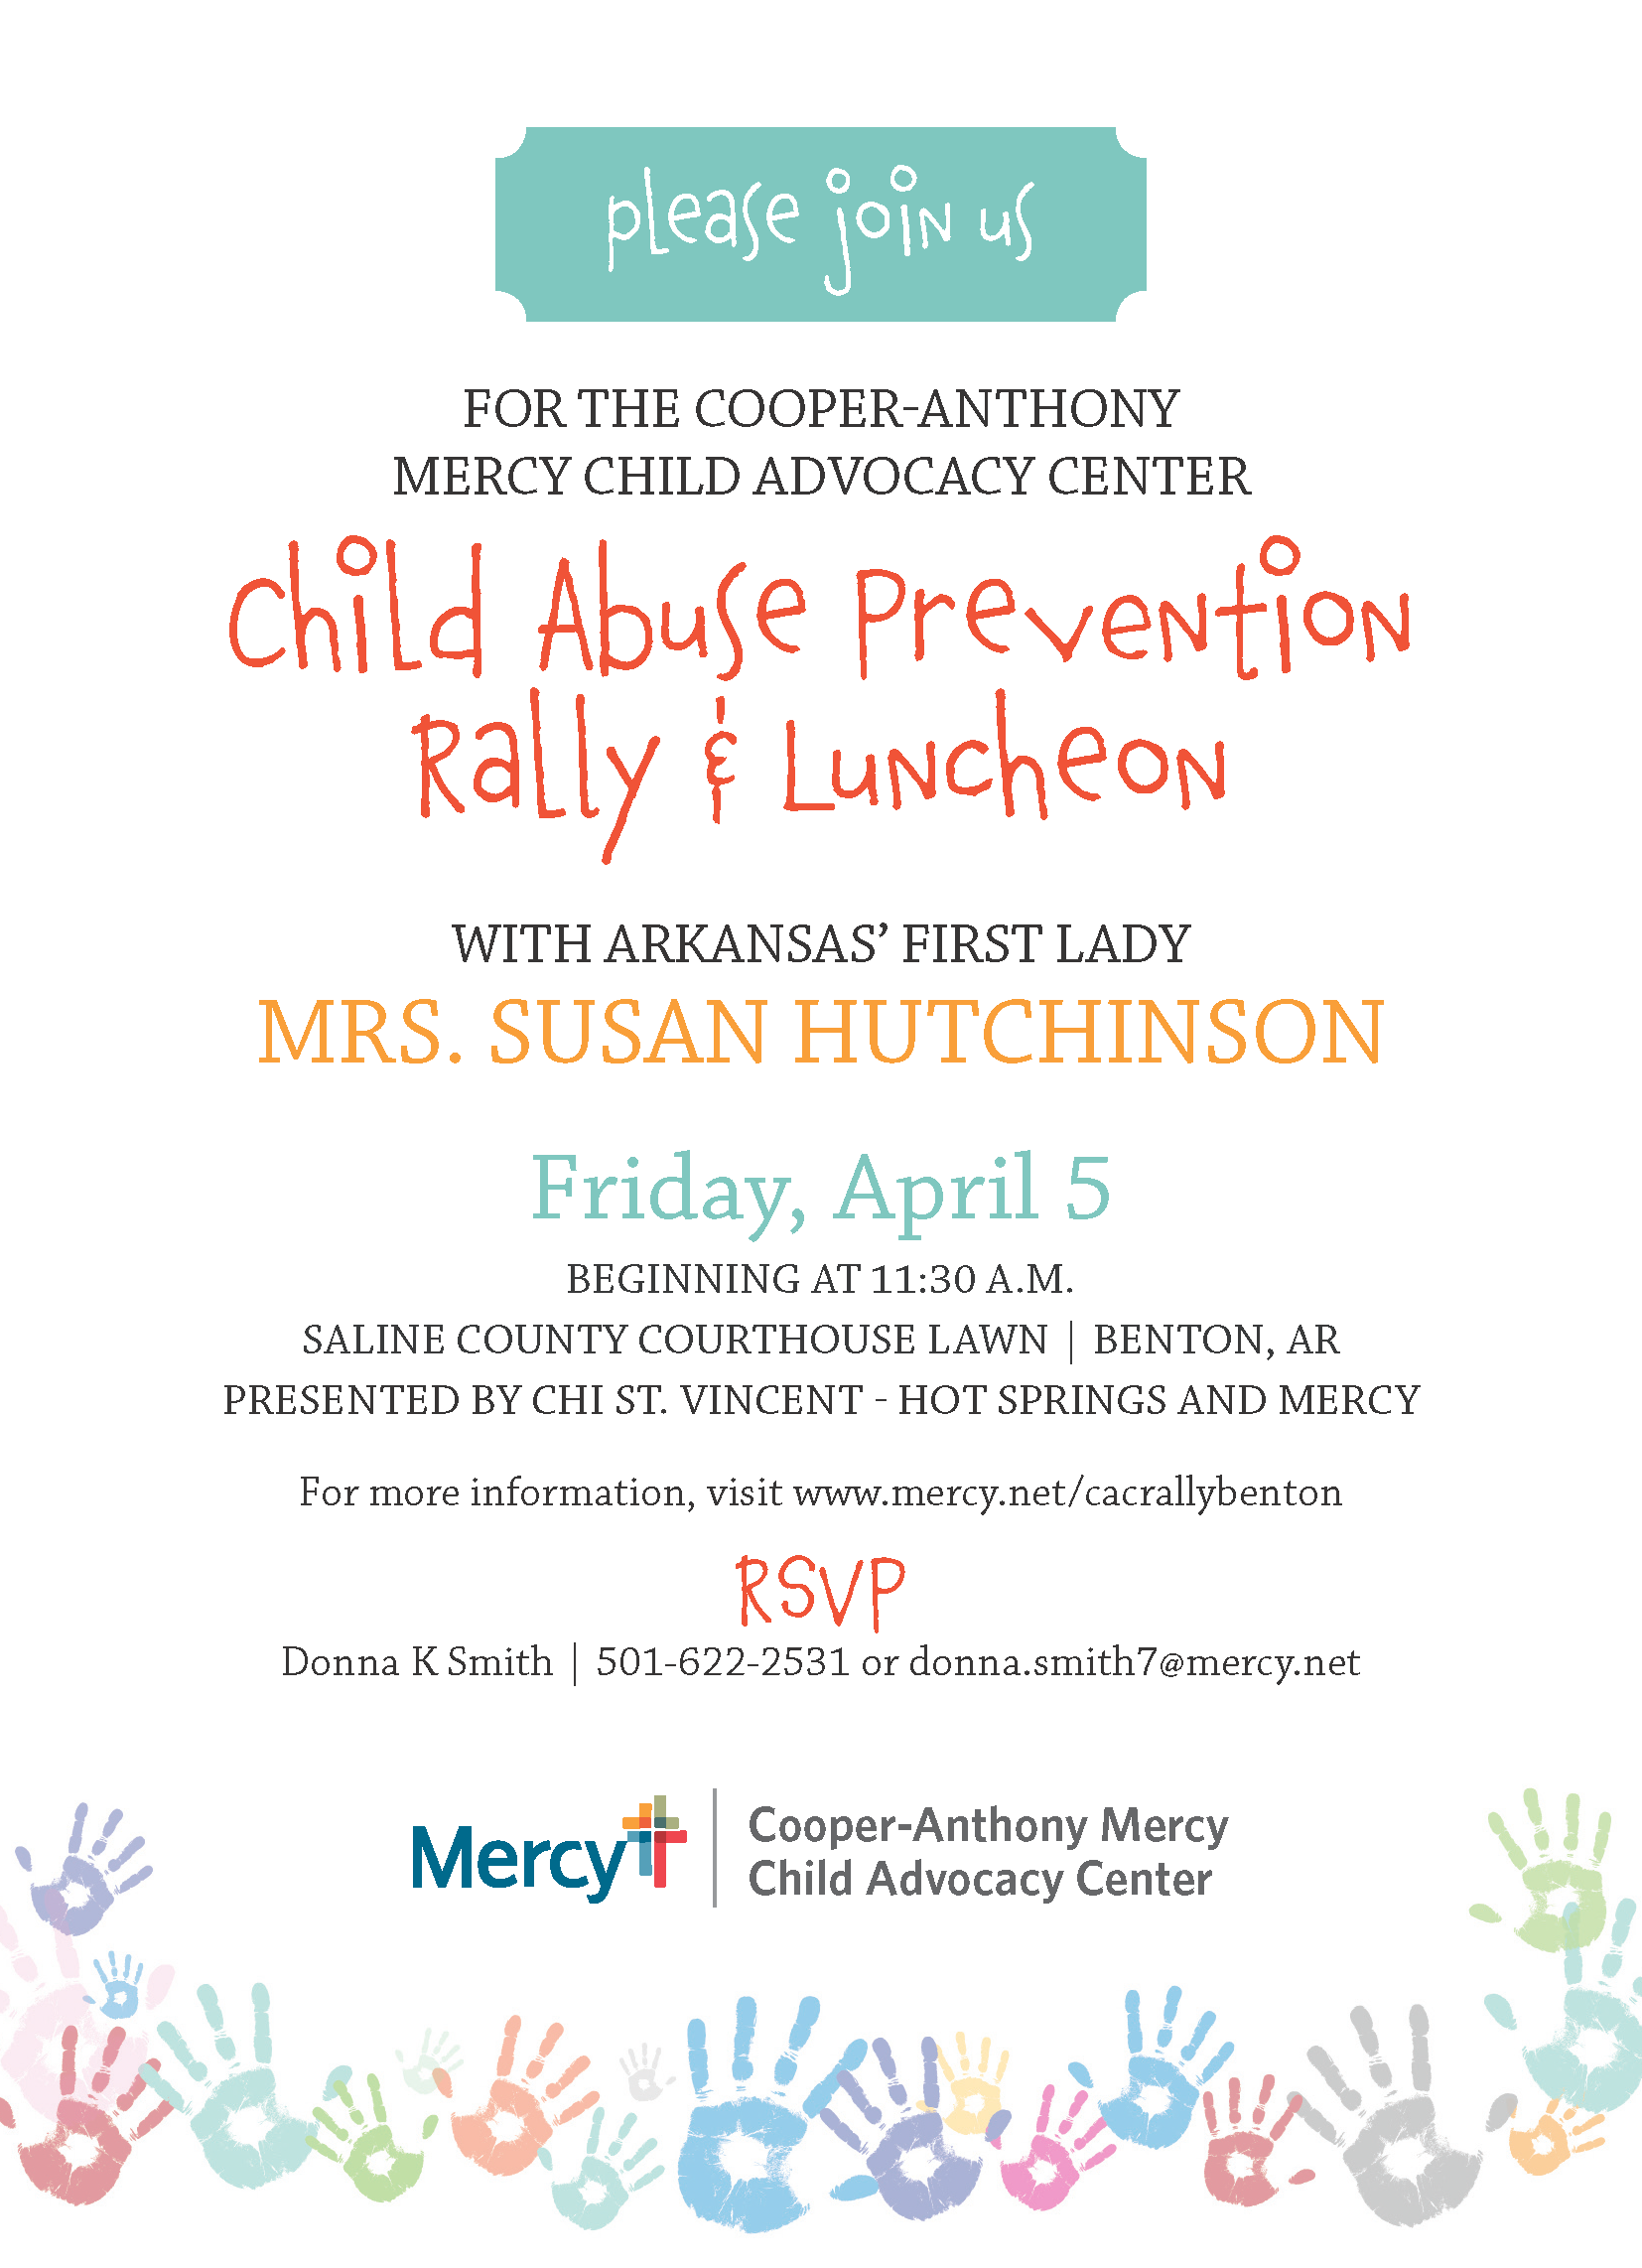 Child Abuse Prevention Rally & Luncheon 4-5-2019